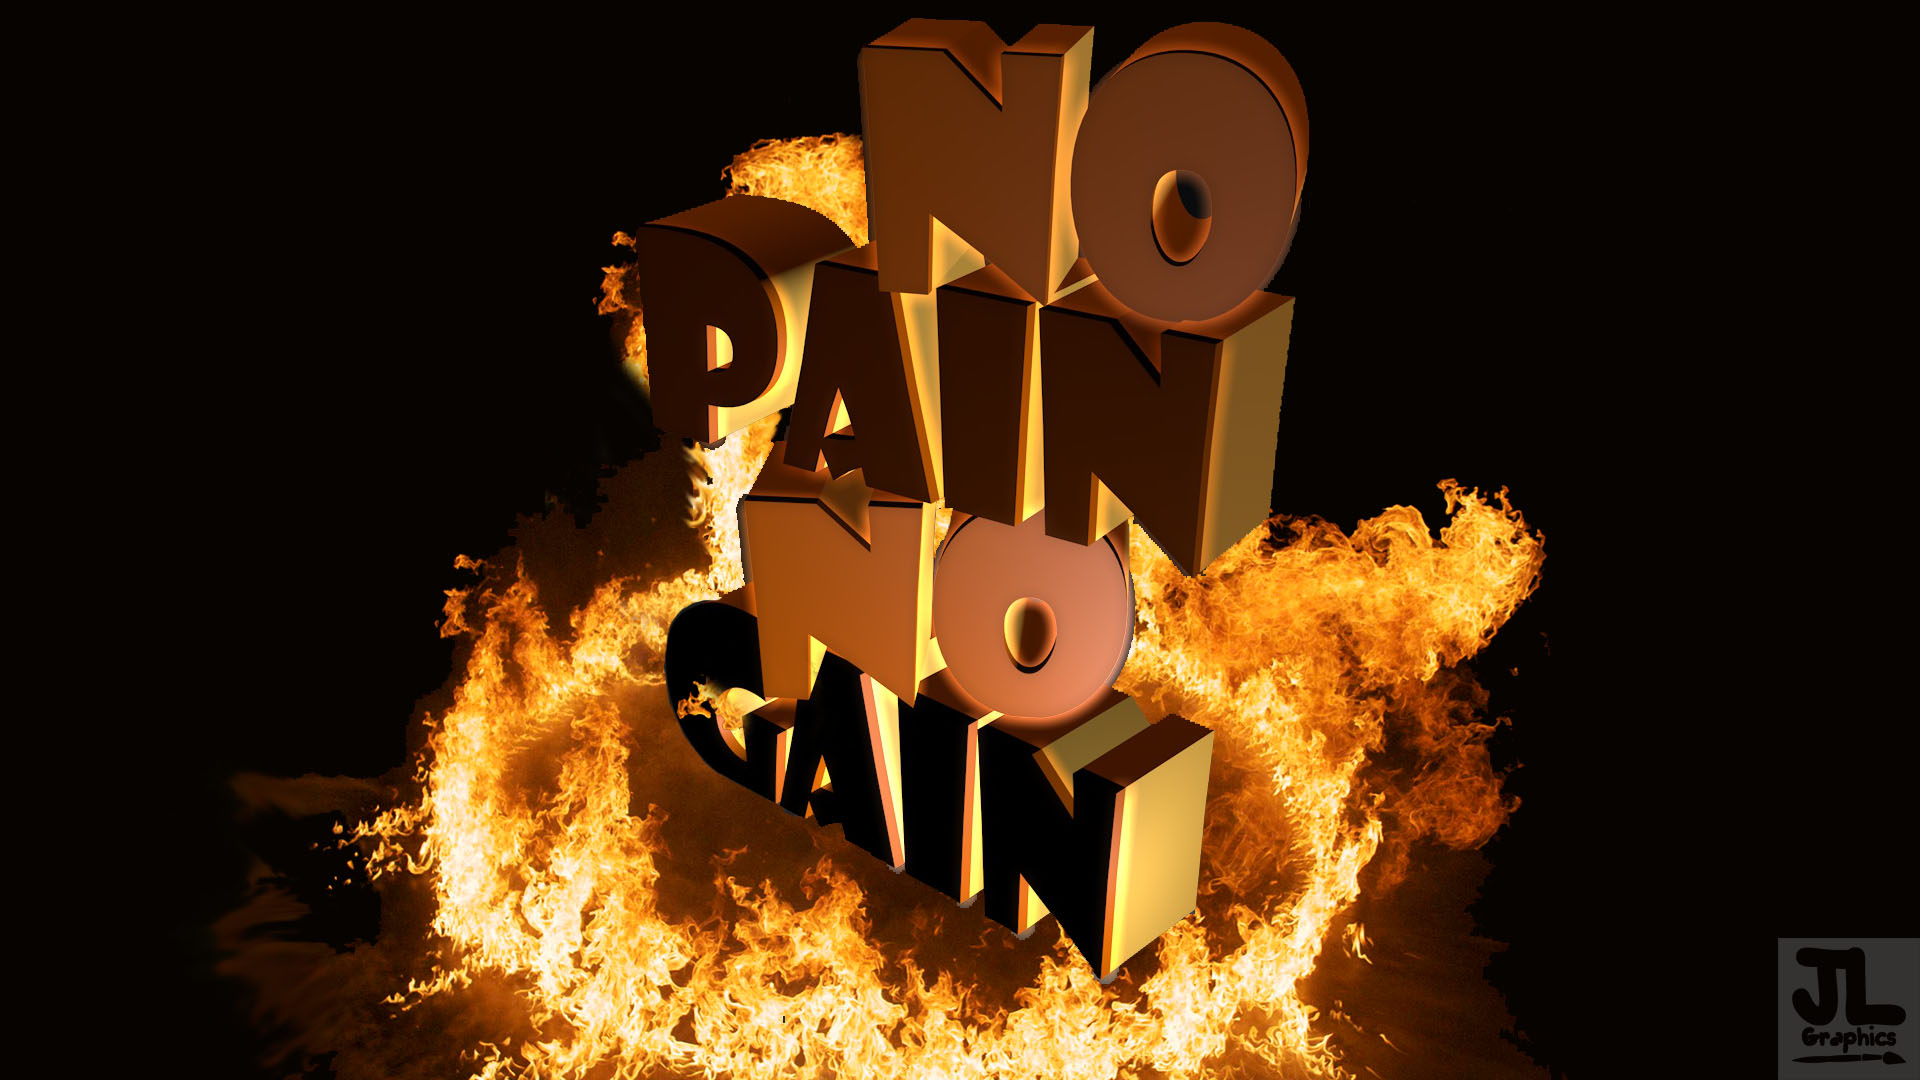 no pain gain wallpapers - photo #33